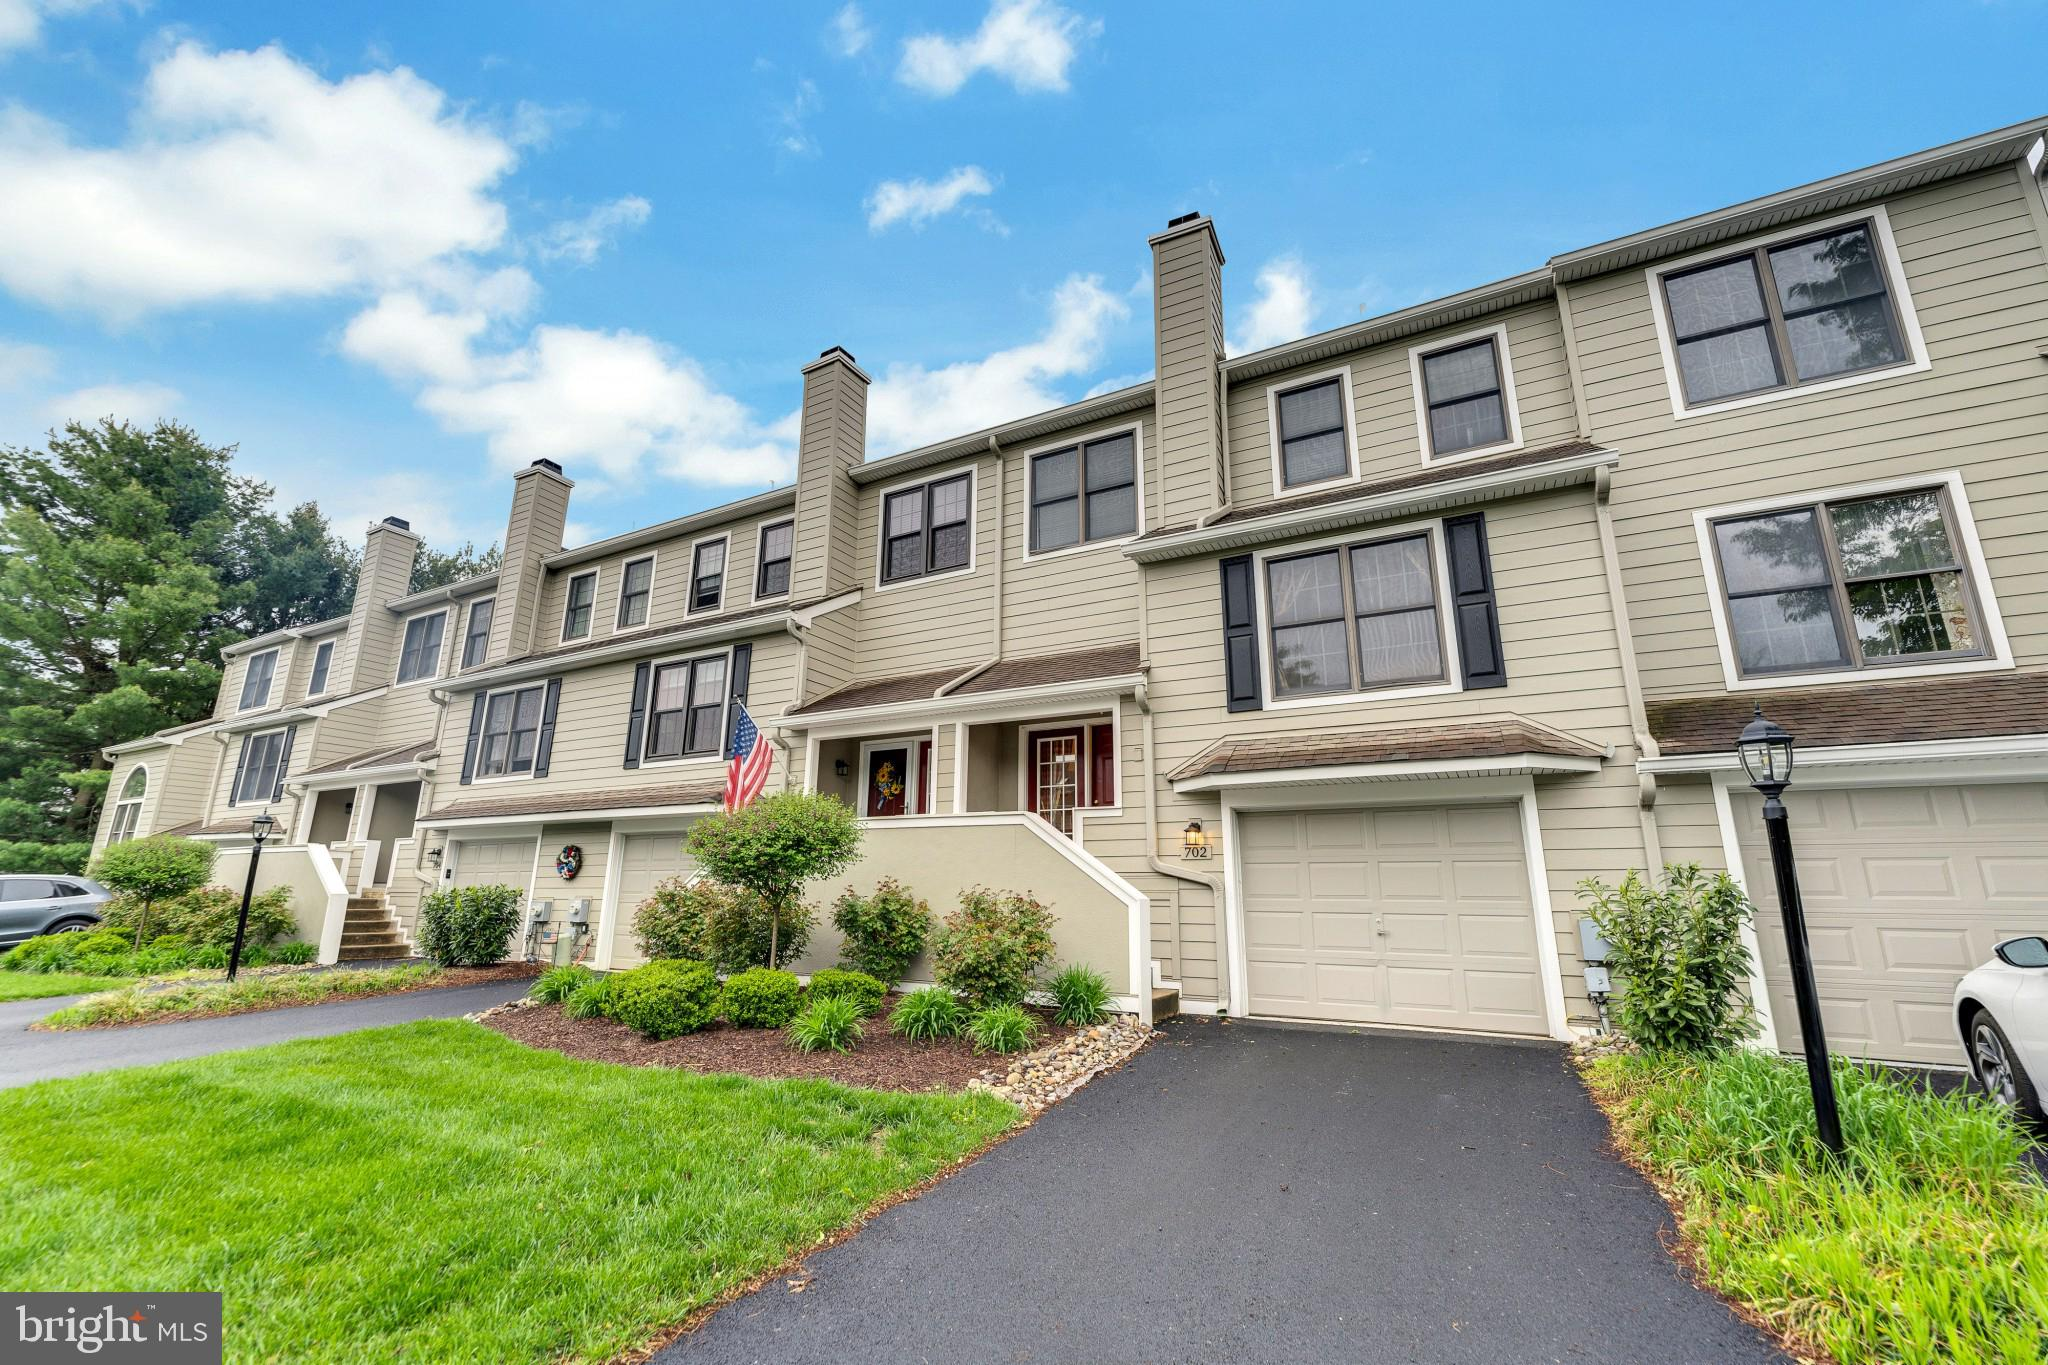 Welcome to 702 Radcliffe Court, a beautiful 4 bedroom, 2.5 bath townhome located in the Willistown Knoll community in sought after Newtown Square. One of the largest units in the whole community. Chester County Schools including the highly rated Sugartown Elementary and Great Valley Schools. Willistown Knoll is spread over about 200 acres of lush green spaces with manicured landscapes shared by about 200 homes. Large open areas throughout the development. You can enjoy about 2.2 miles of peaceful walk/run in the development protected from traffic everyday.  Enjoy open concept living on the main level with an expansive living and dining room area, a warm wood burning fireplace, beautiful chair rail and crown molding that continues into the kitchen. Inviting kitchen boasts hardwood floors, double sink, recessed lighting, tile backsplash, breakfast bar and a sun-drenched breakfast room with french doors to the wooden back deck.  Enjoy warm summer days outside on your deck enjoying your morning coffee or entertaining friends and family.  A powder room with hardwood floors completes the main level.  Stairs to the upper-level lead to the large master bedroom with crown molding and a large en-suite with double sink, soaking tub, shower stall and tile floor.  Three additional bedrooms, a full bath and hallway linen closet can all be found on the upper level.  Lastly, the lower level has been finished to offer additional living space with a dry bar and an unfinished area, perfect for all of your storage needs! Parking in the driveway for 1 car, 1-car attached garage and up to 5 additional parking spaces available in the common parking. Large size garage with ample opportunity for storage. The Willistown Knoll association takes care of all of the external maintenance, roofs, lawn care, snow removal including that on your steps and driveways, and landscaping.  Perfect setting with 3 minutes car drive to the popular 180-acre Okehocking Preserve with its meadows, rolling hills, 